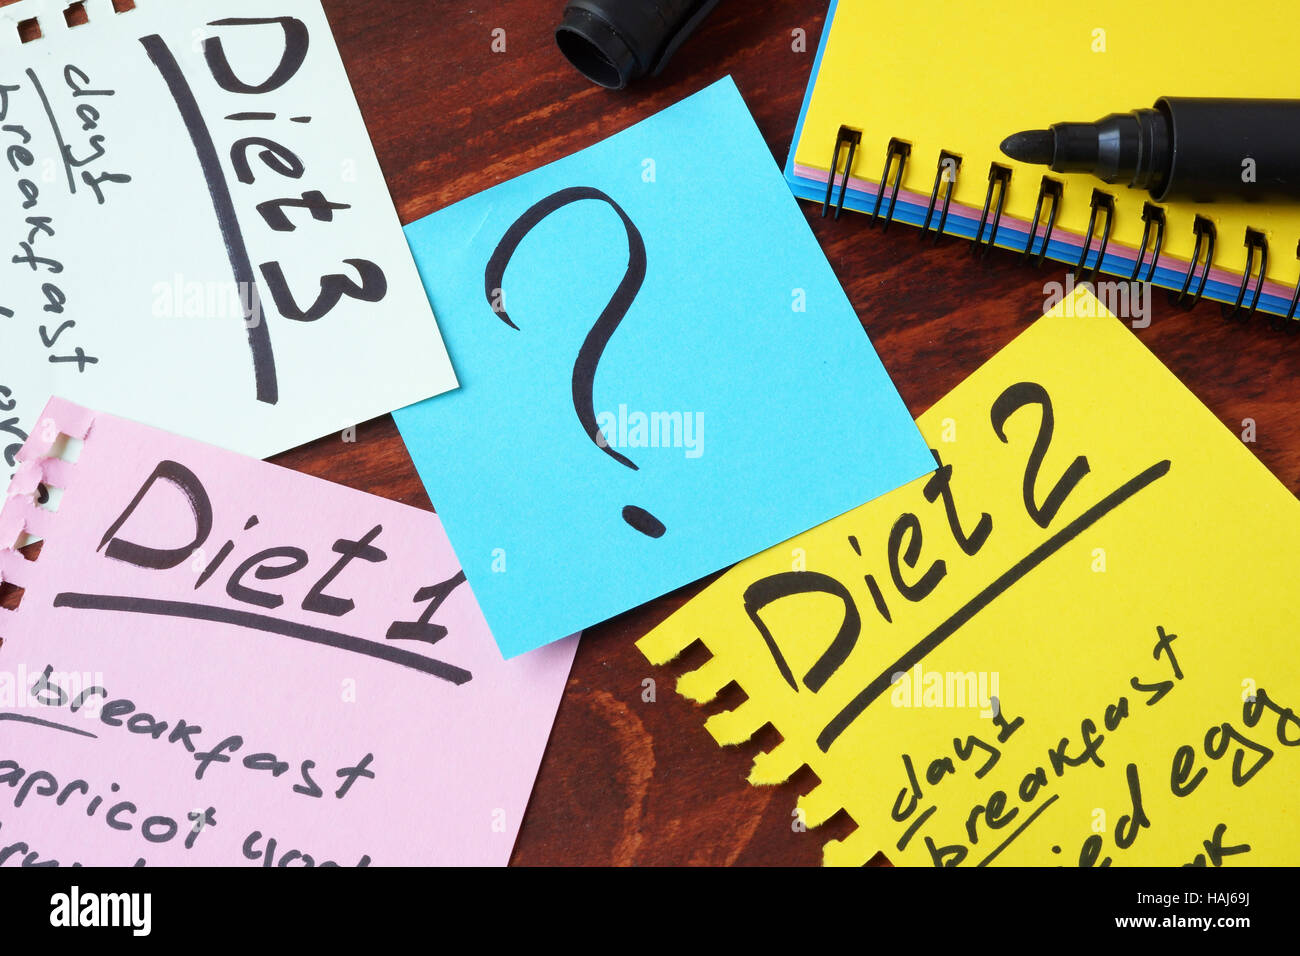 Diet Plans written on pages. Weight loss concept. - Stock Image